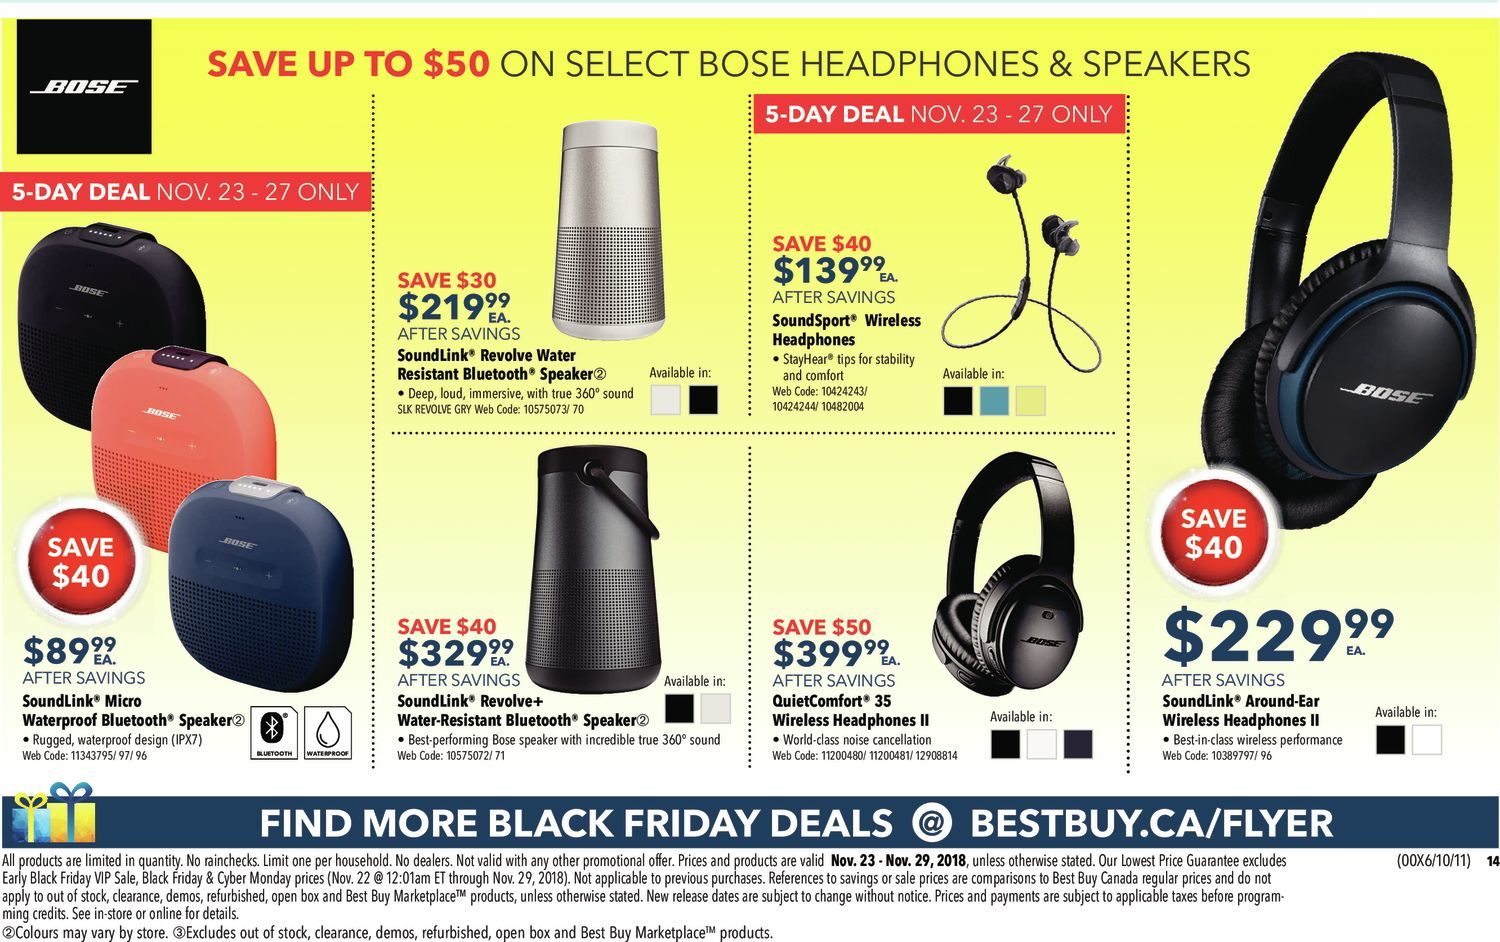 Best Buy Weekly Flyer - Weekly - Black Friday Sale - Nov 23